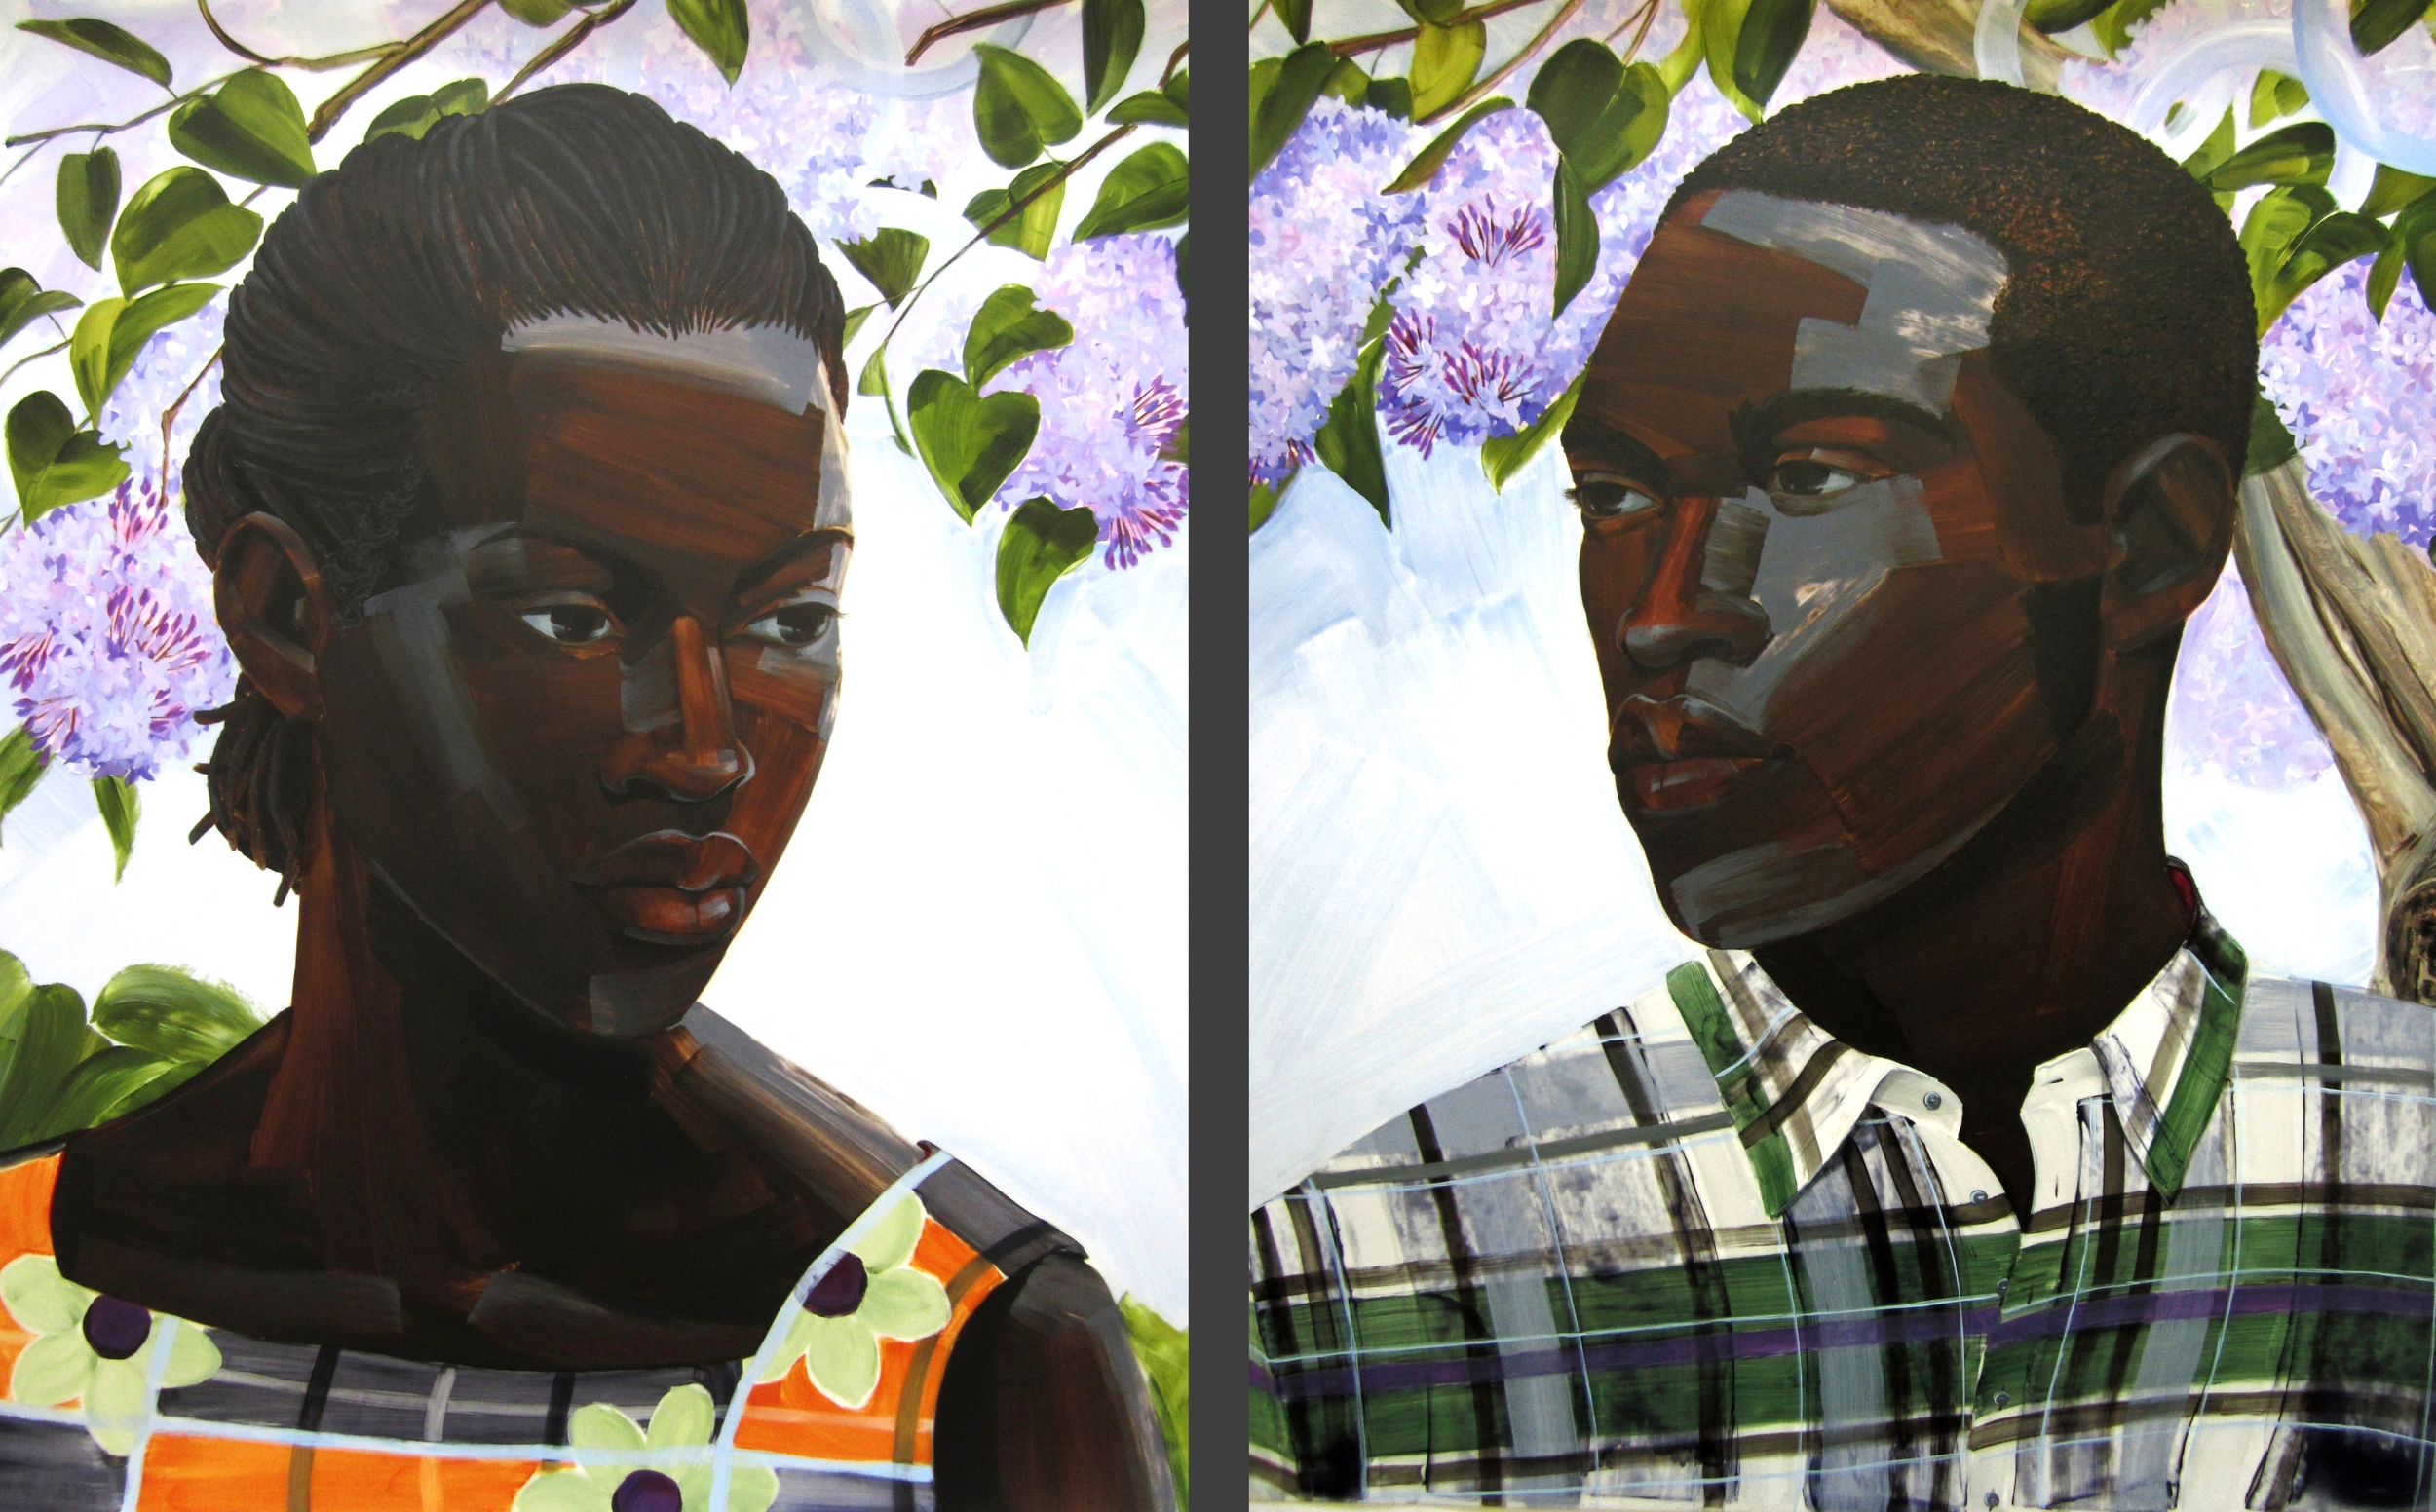 "Resplendent Flame (First Love, Ish & Isha), diptych, 2014, acrylic on mylar, 40"" X 33"" each panel."